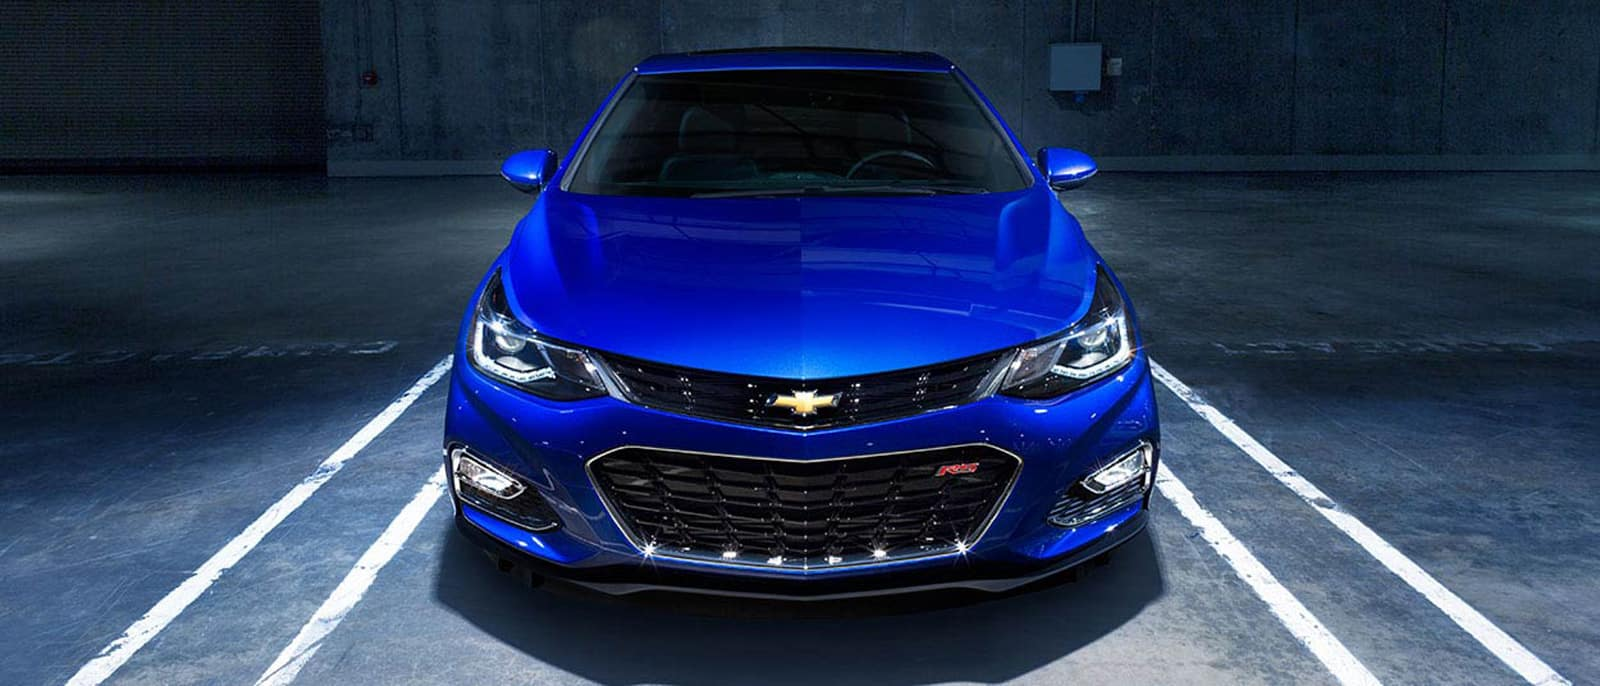 Chevrolet Cruze front end